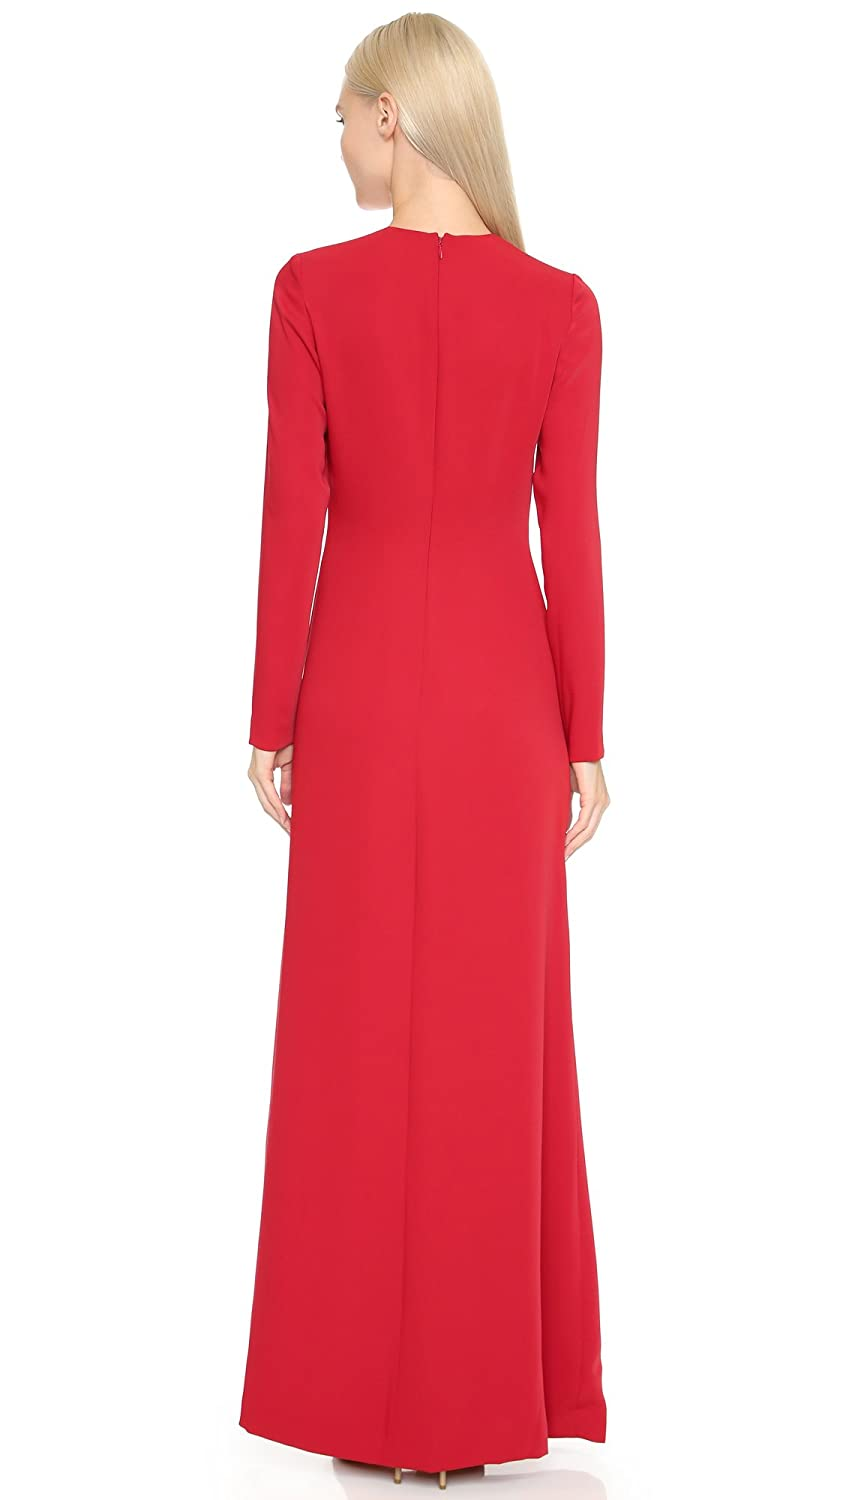 377c7656d0a Amazon.com  Jill Jill Stuart Women s Long Sleeve High Side Slit Gown   Clothing